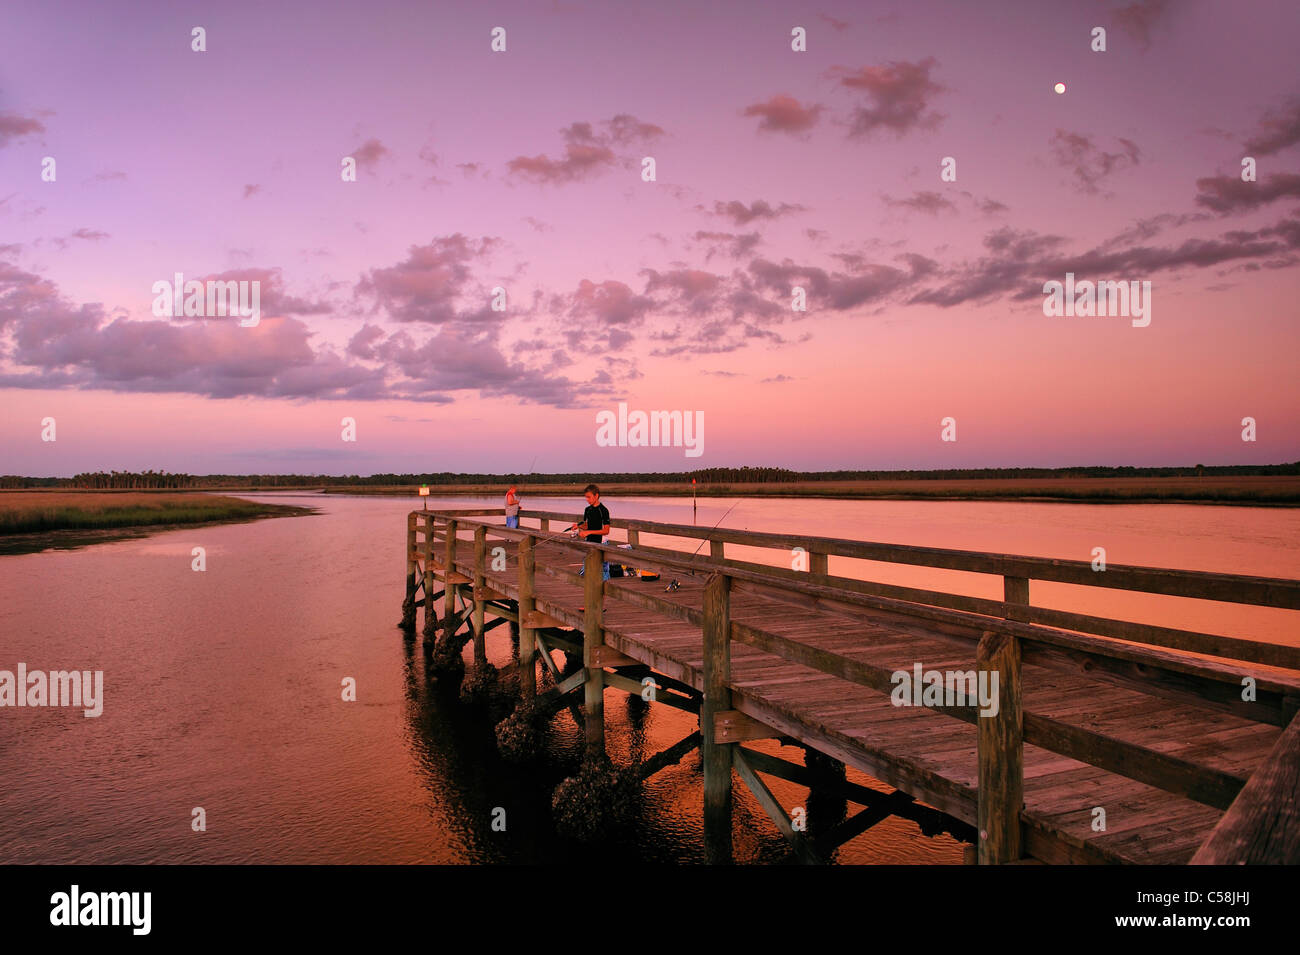 People Fishing Pier Bayport Park Dusk Pine Island Near Spring Hill Florida USA United States America Sunset